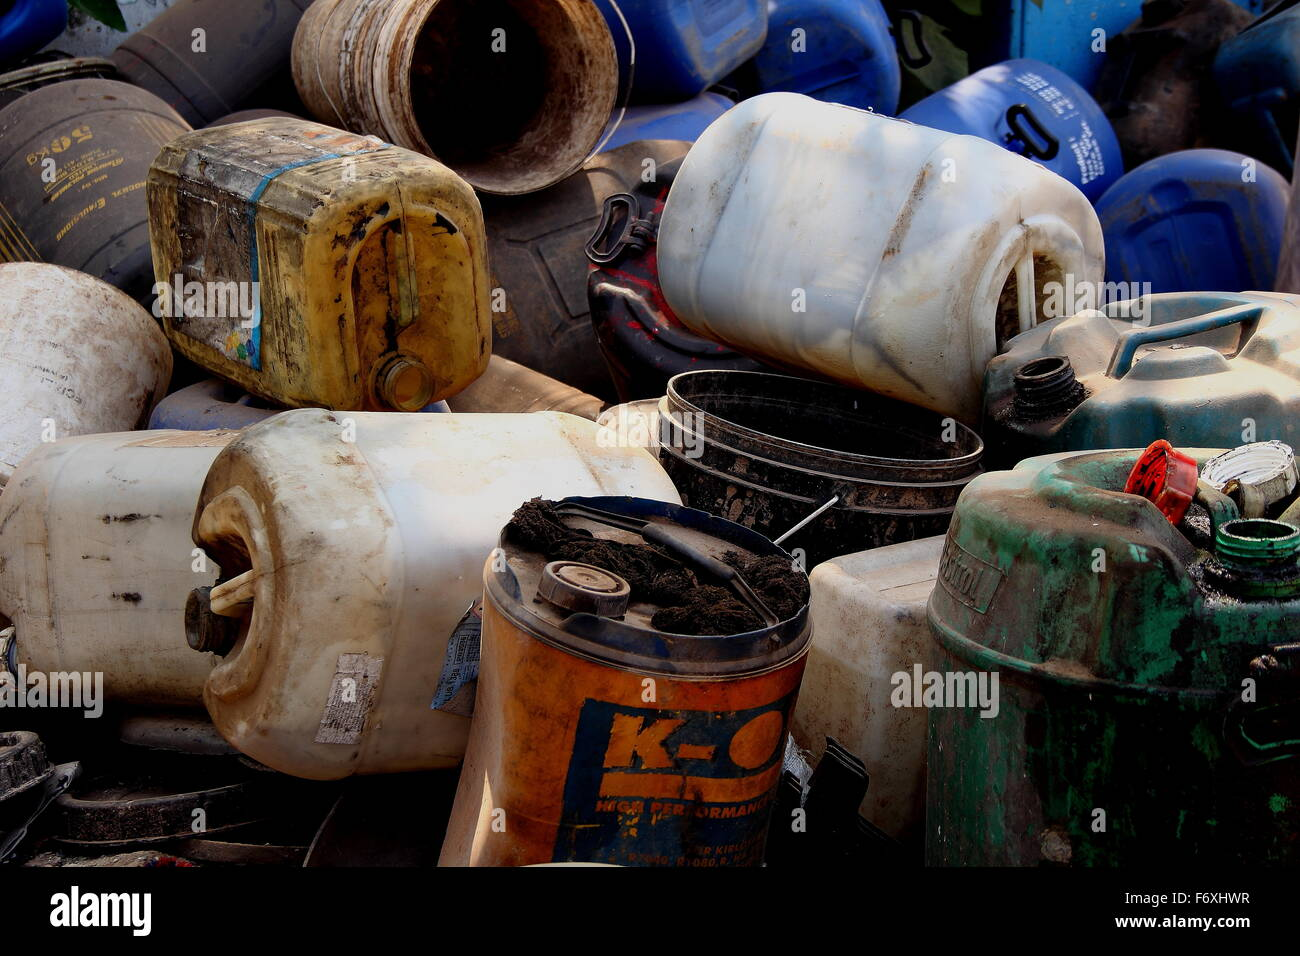 After a painting work dumping some paint buckets. - Stock Image